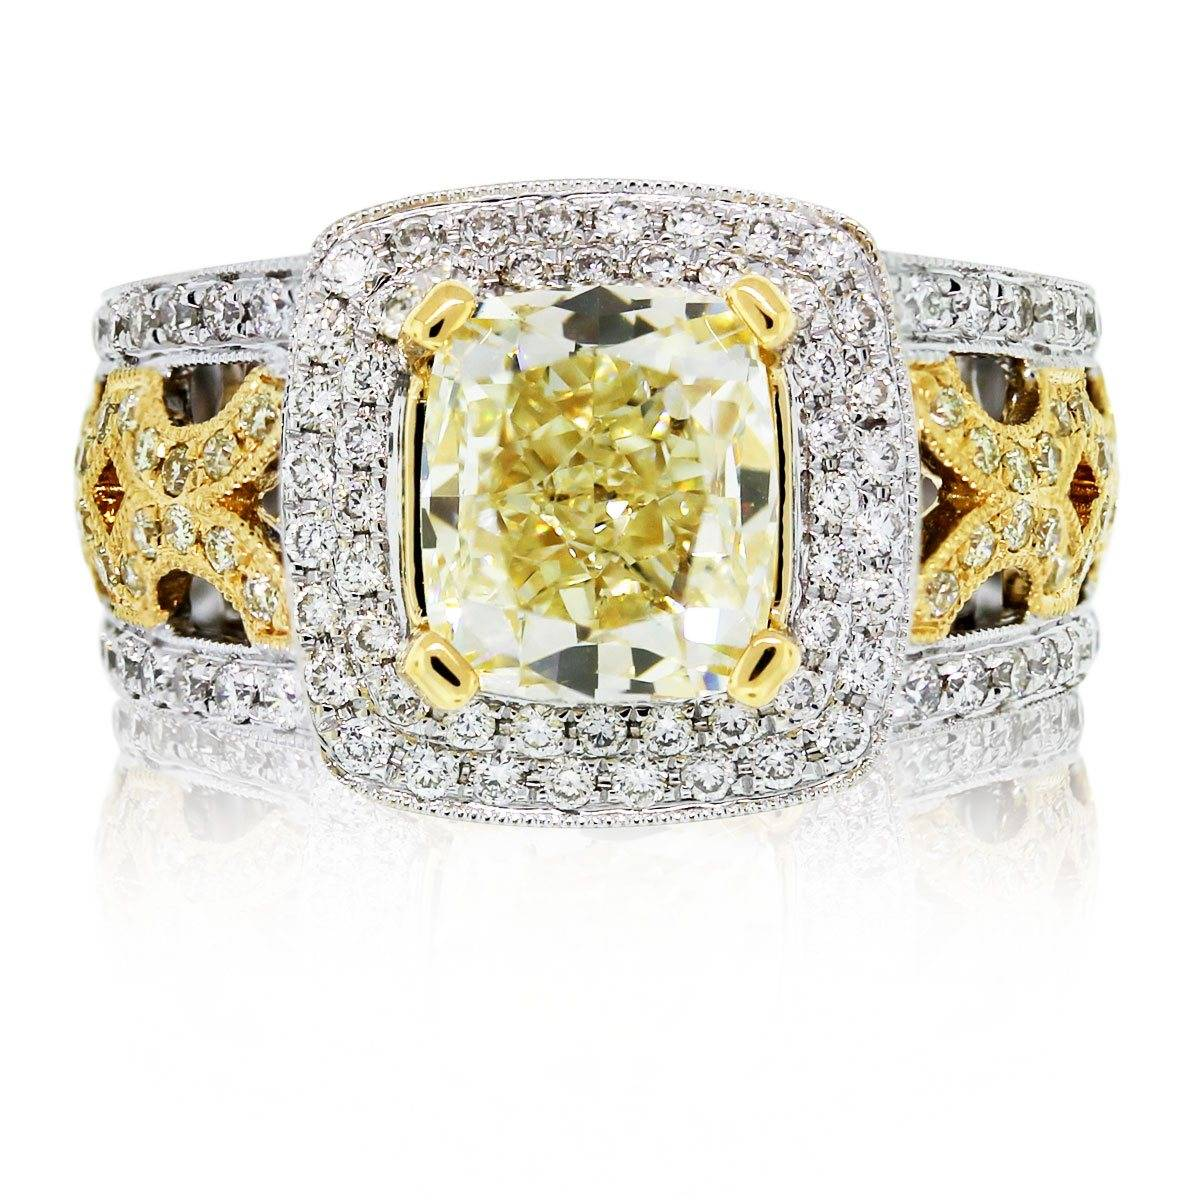 Cushion cut fancy yellow engagement ring